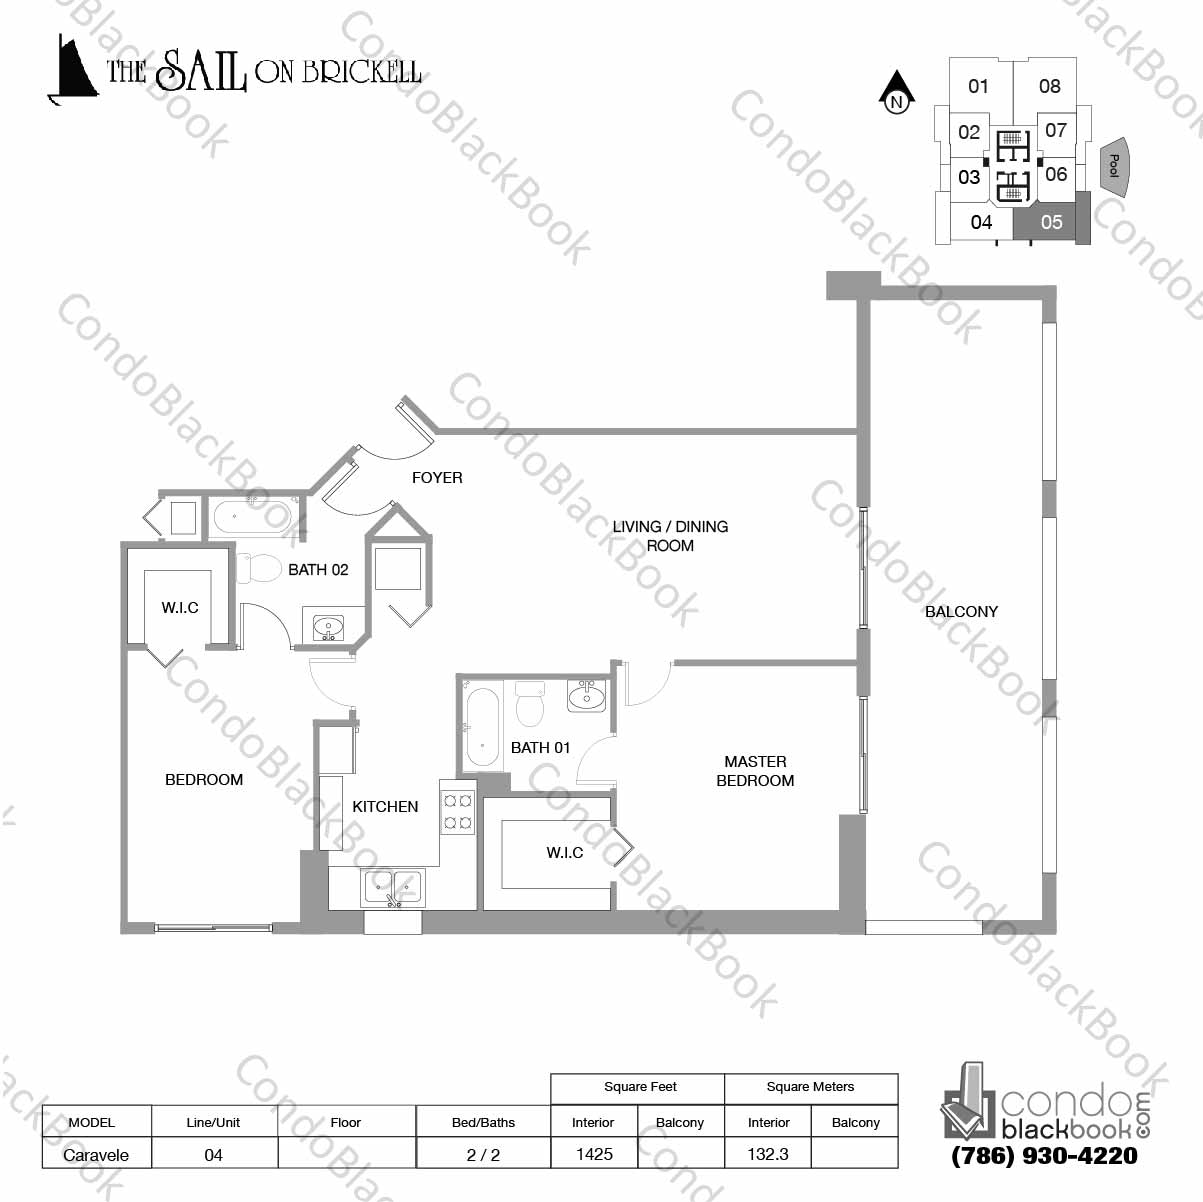 Floor plan for Sail on Brickell Brickell Miami, model Caravele, line 05, 2 / 2 bedrooms, 1425 sq ft